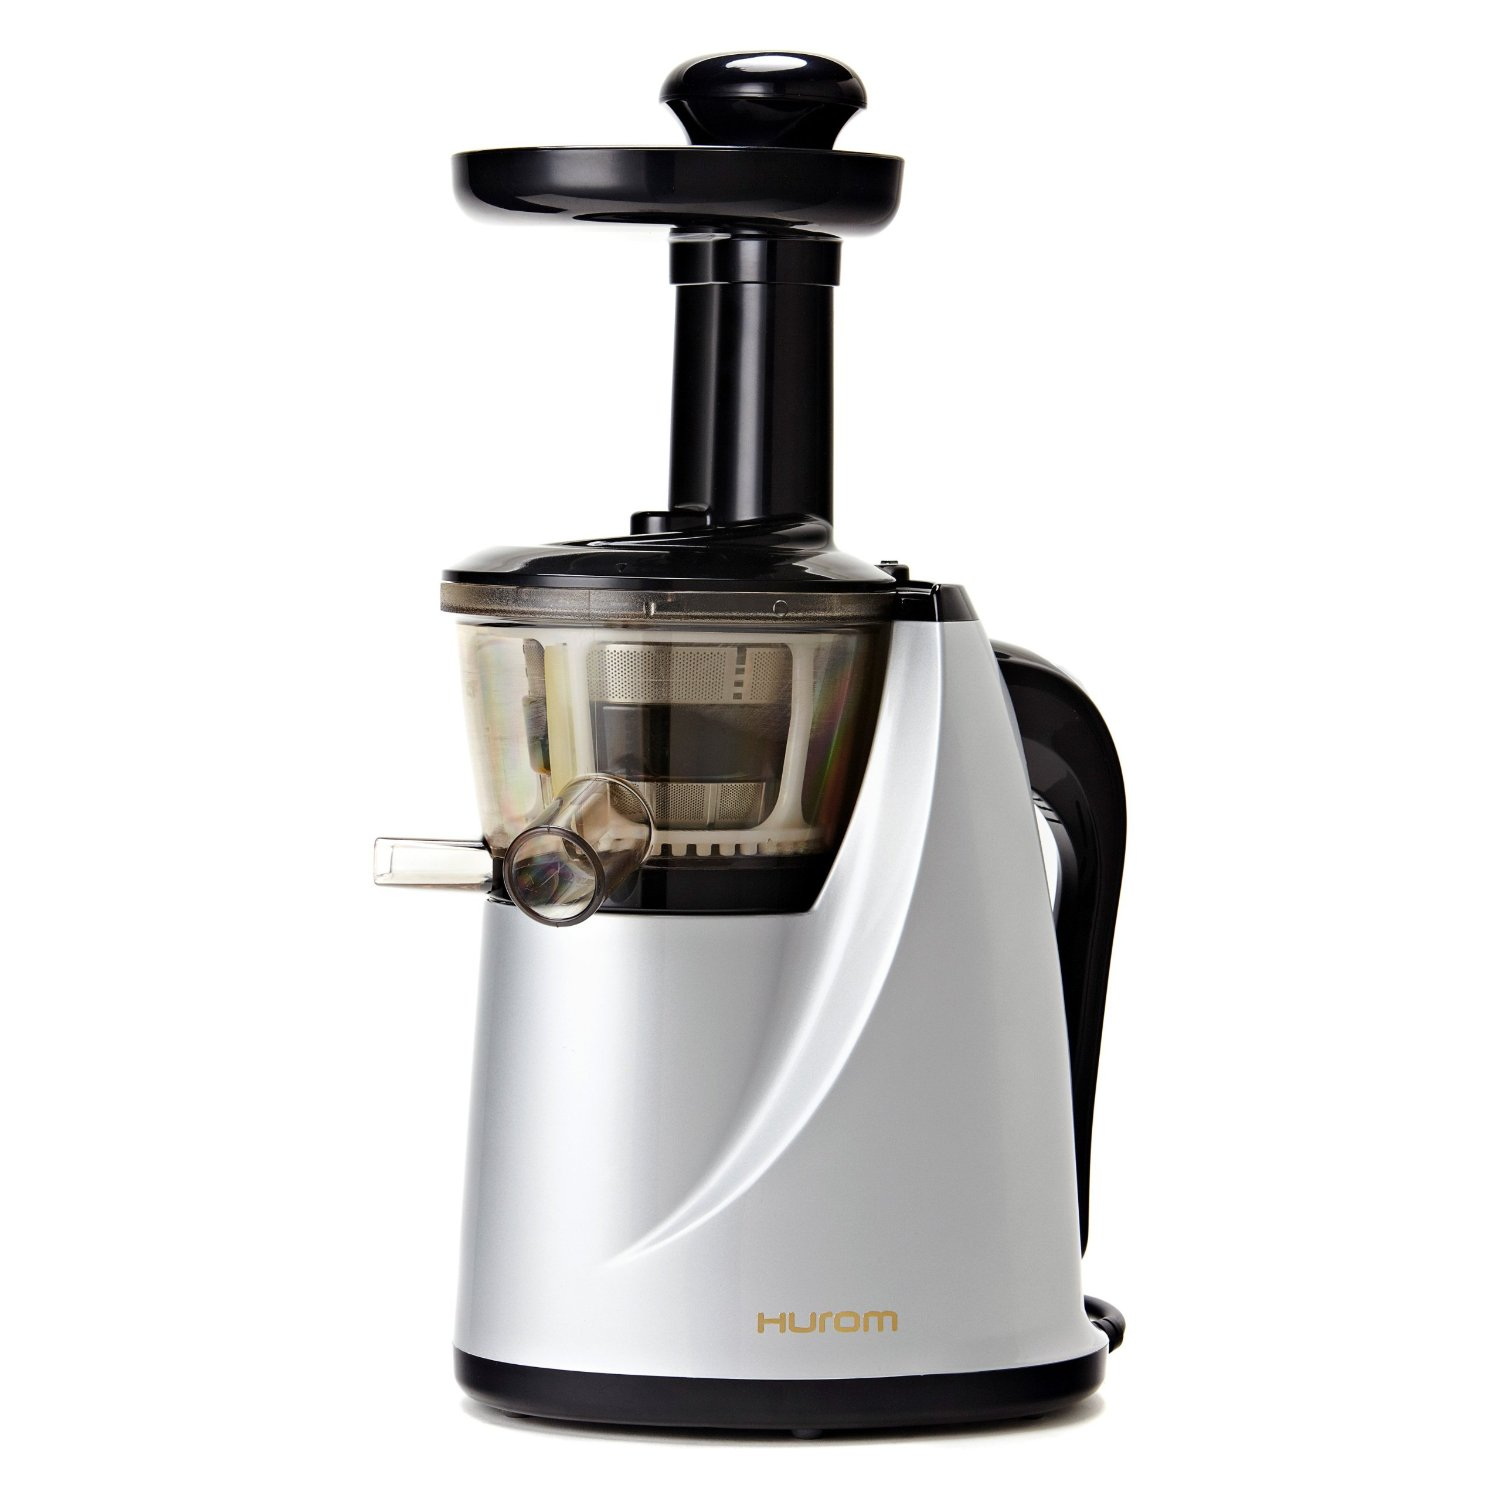 Slowstar Masticating Juicer : Hurom HU-100 Masticating Slow Juicer Review - Best Cold Press Juicers